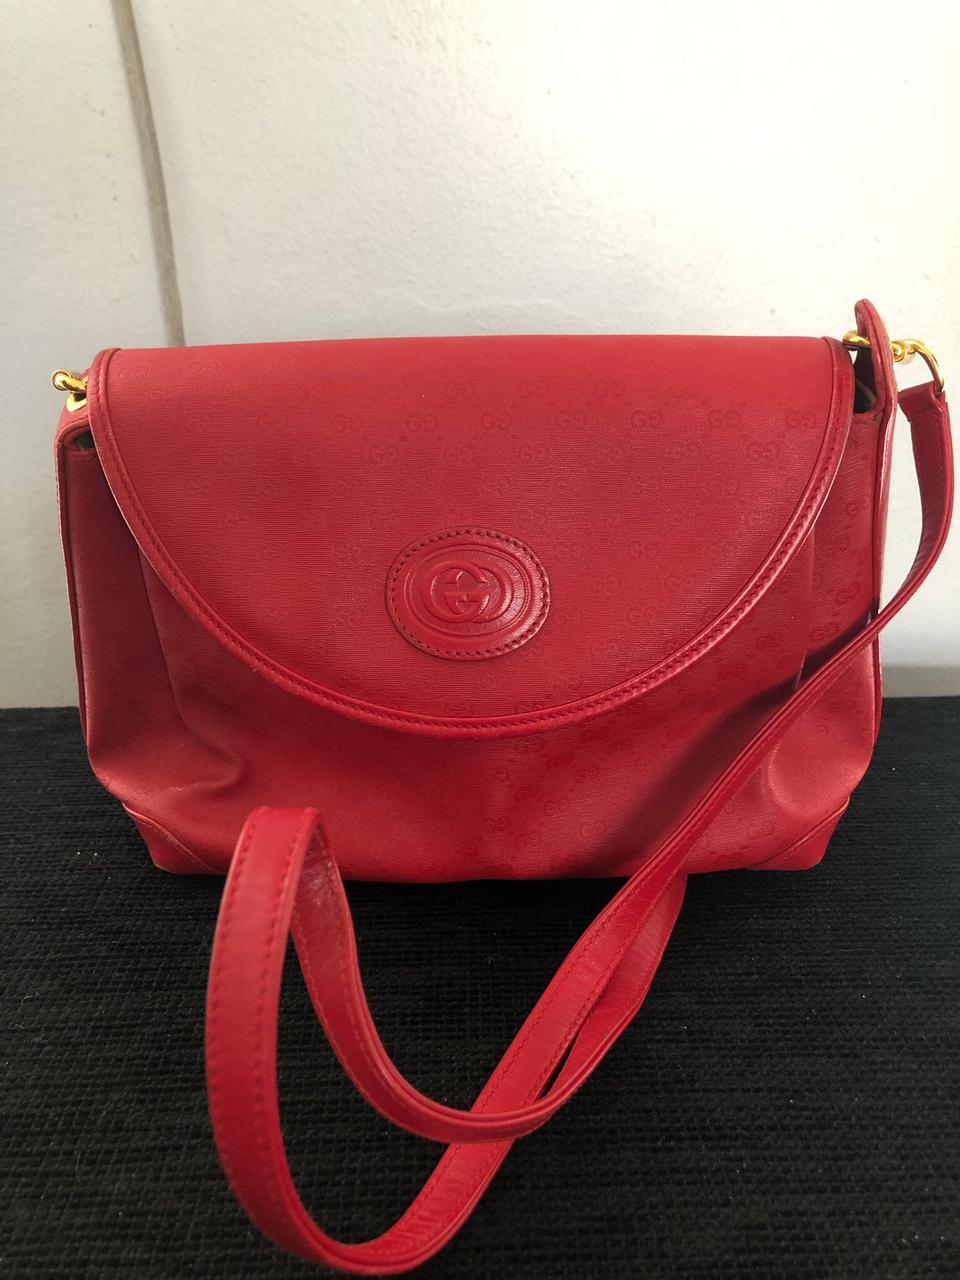 Authentic Gucci Red Bag